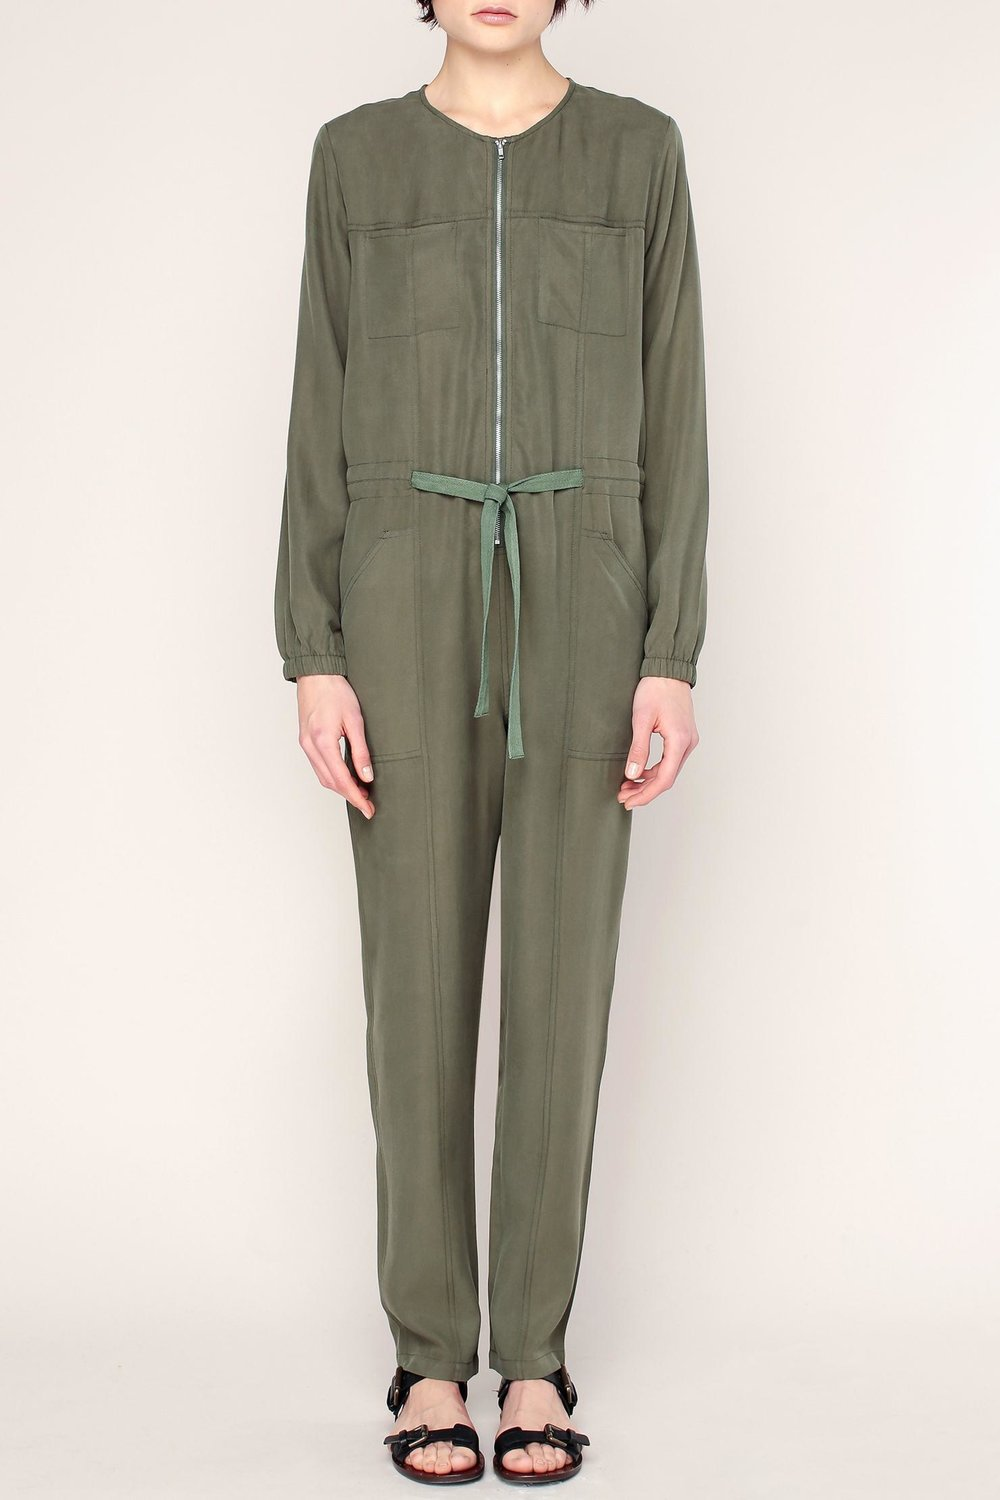 mkt-studio-Green-Khaki-Jumpsuit.jpeg